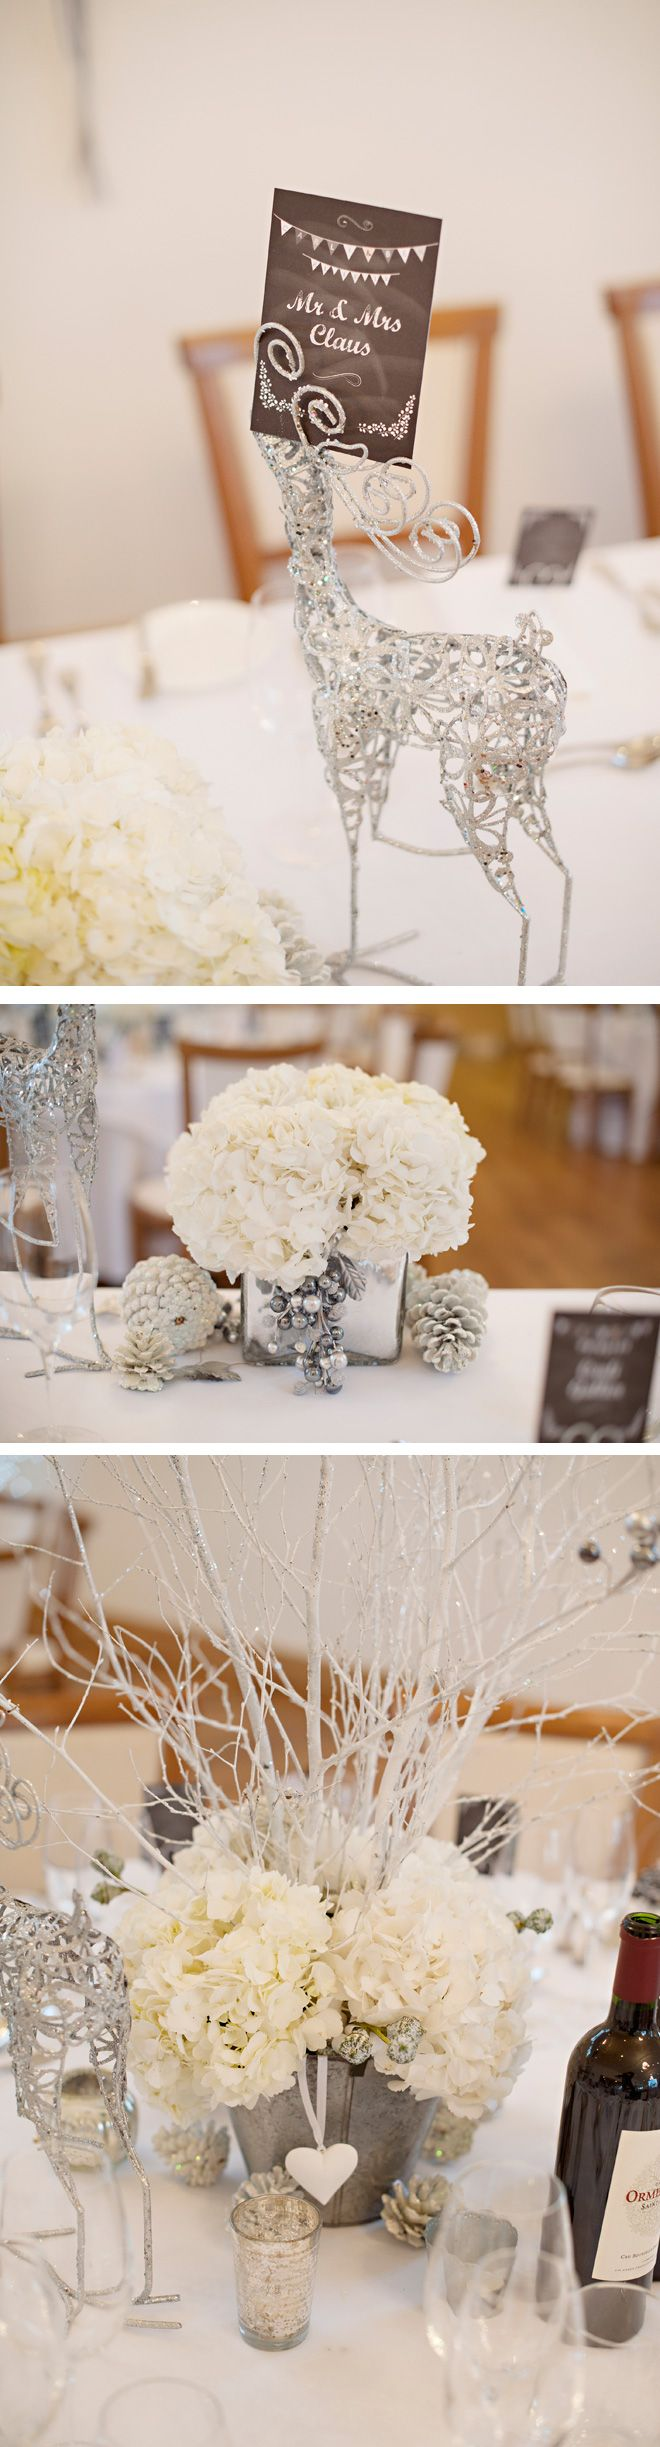 Christmas Wedding Ideas | Wedding Themes